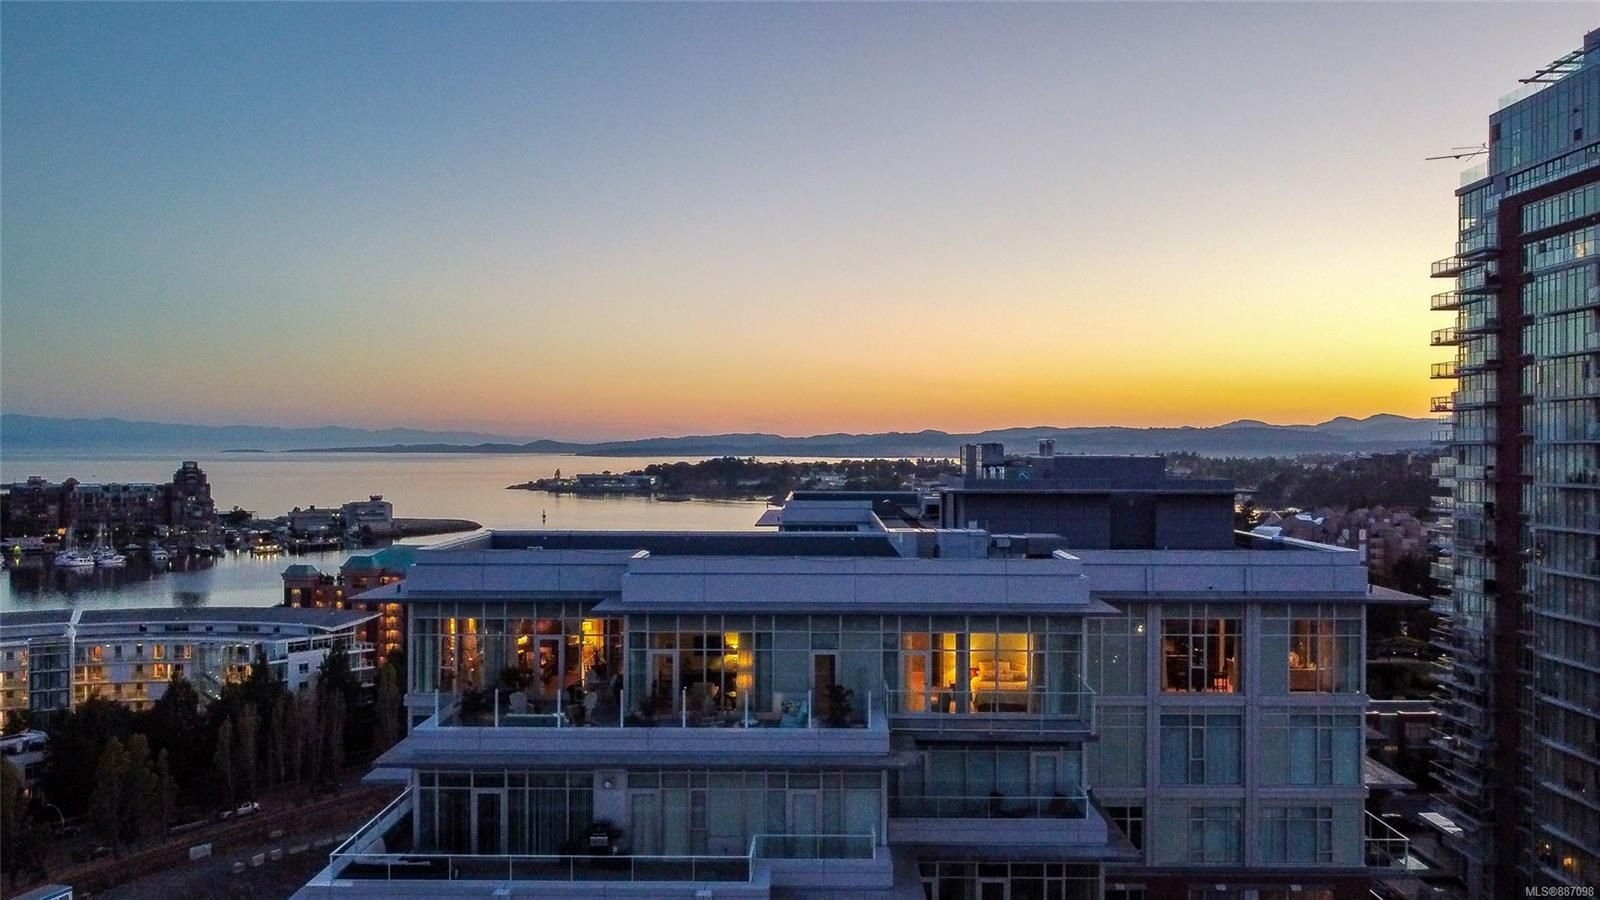 Main Photo: 1006/1007 100 Saghalie Rd in Victoria: VW Songhees Condo for sale (Victoria West)  : MLS®# 887098